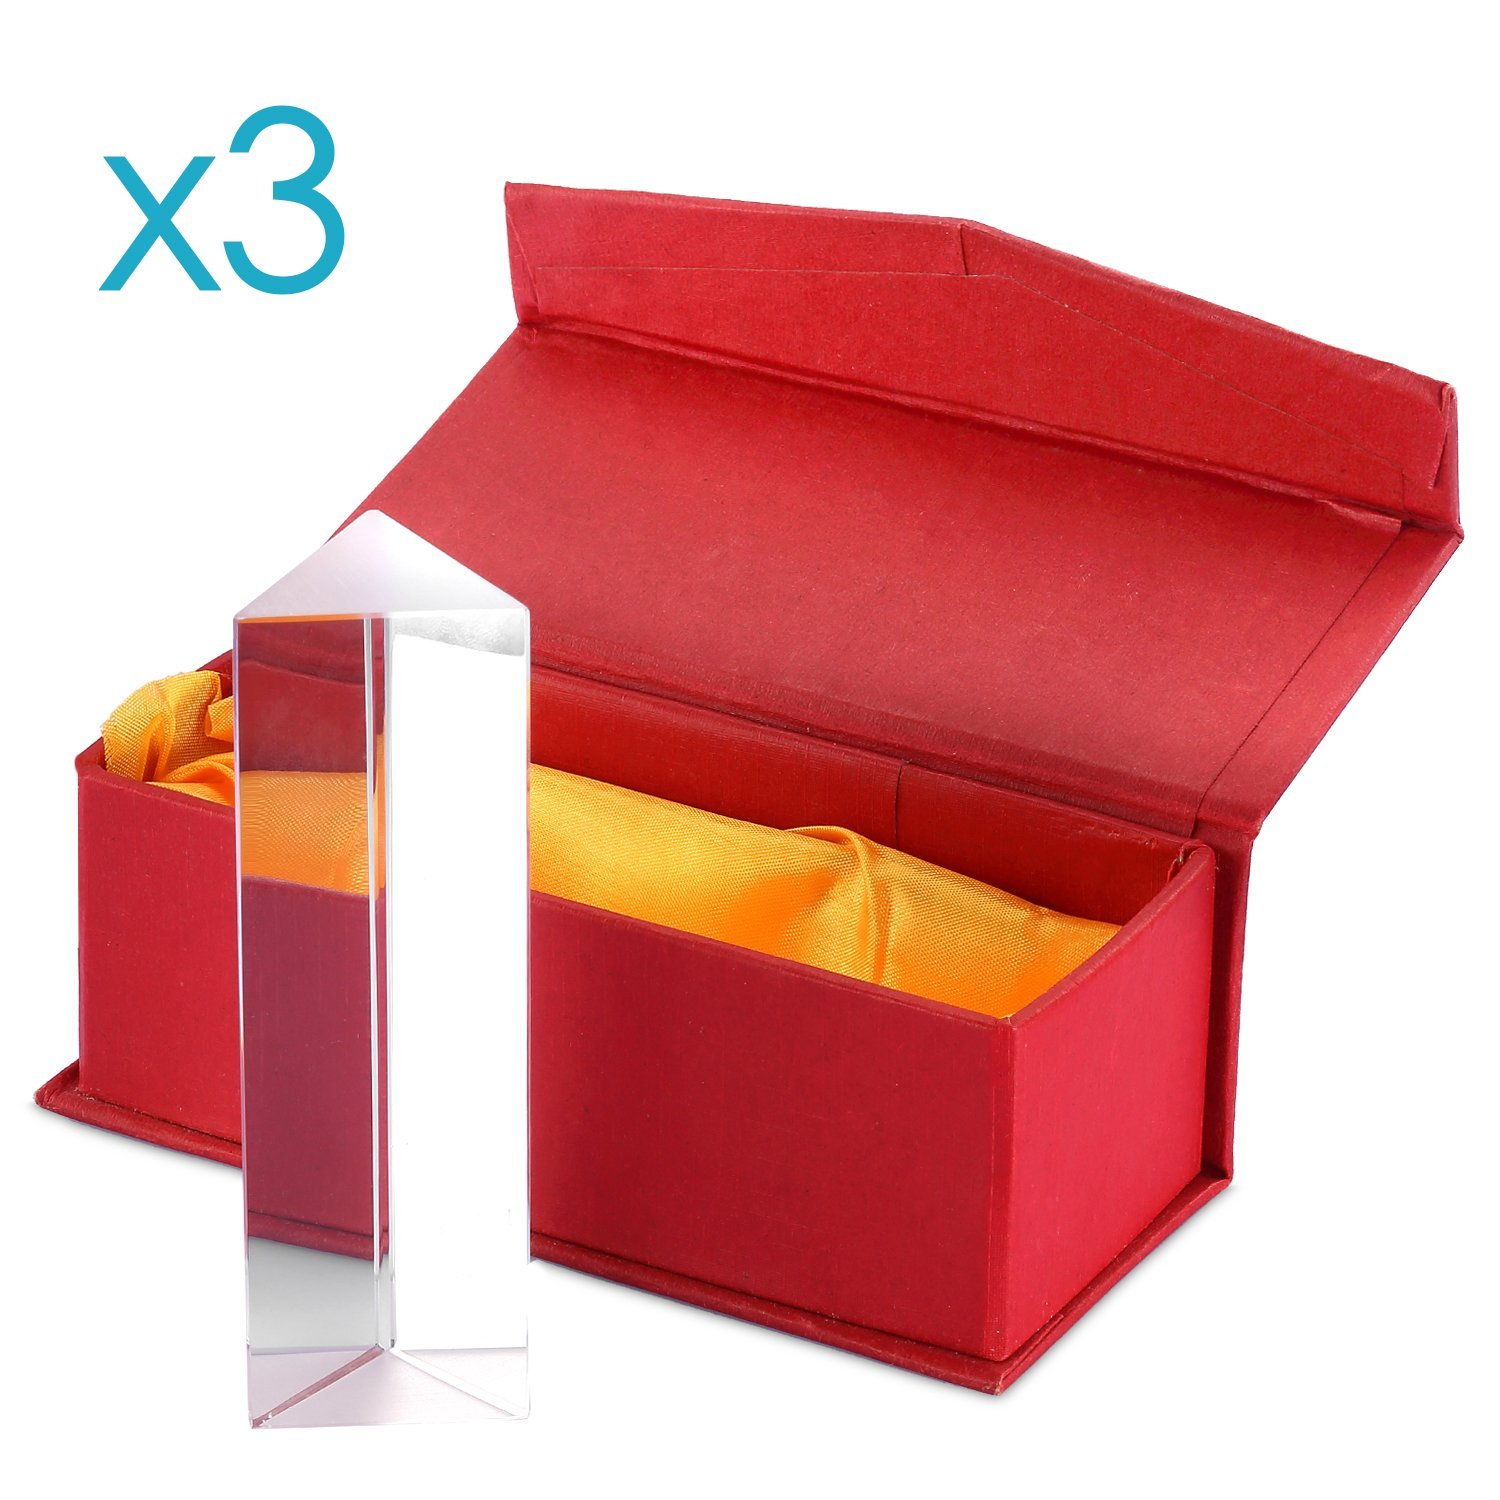 Neewer 3 Pieces 3.94 inches/10 centimeters Optical Glass Triple Triangular Prism Physics Teaching Light Spectrum